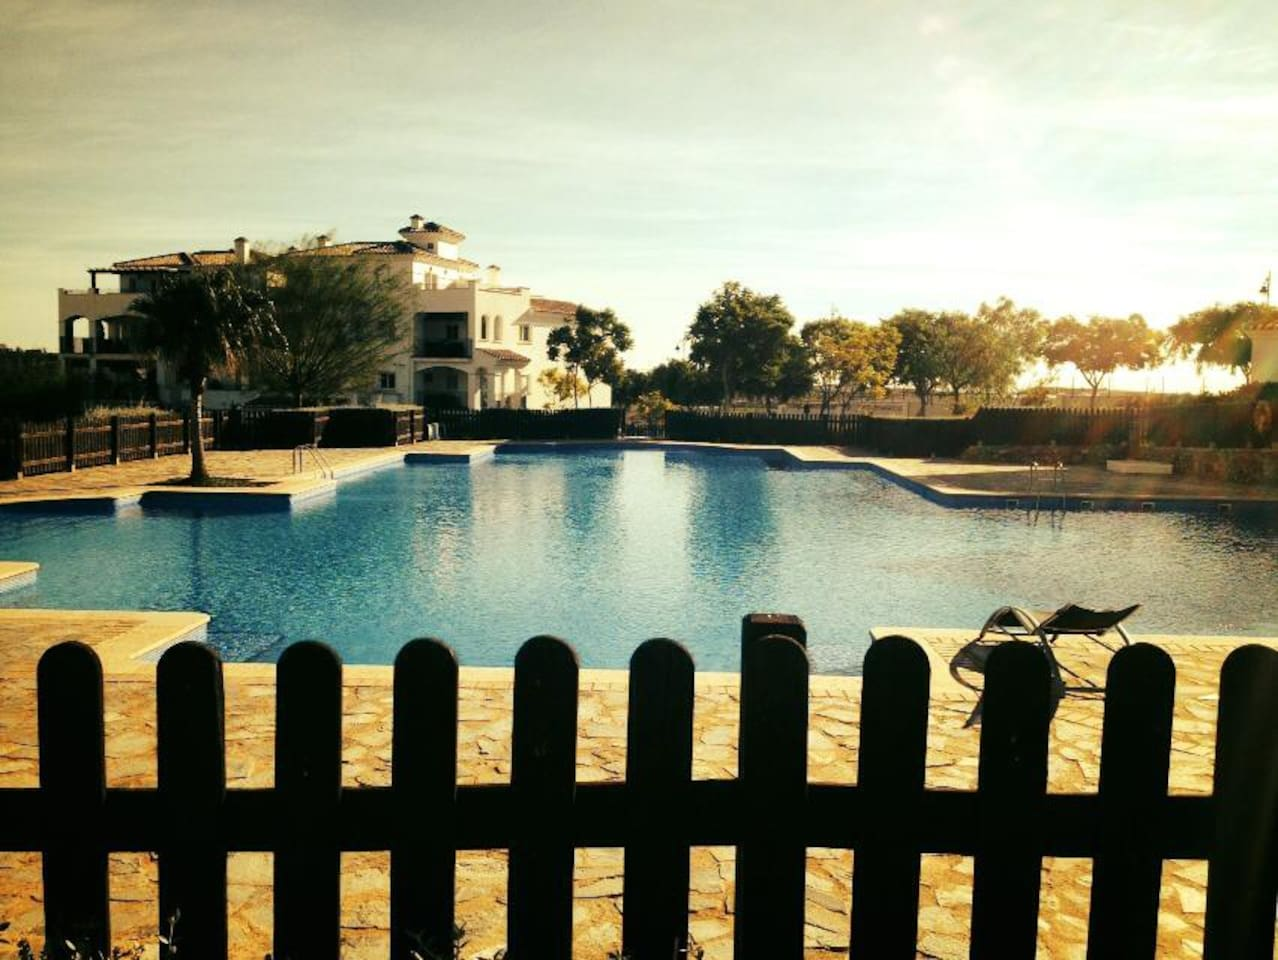 Swimming pool next to the apartment block